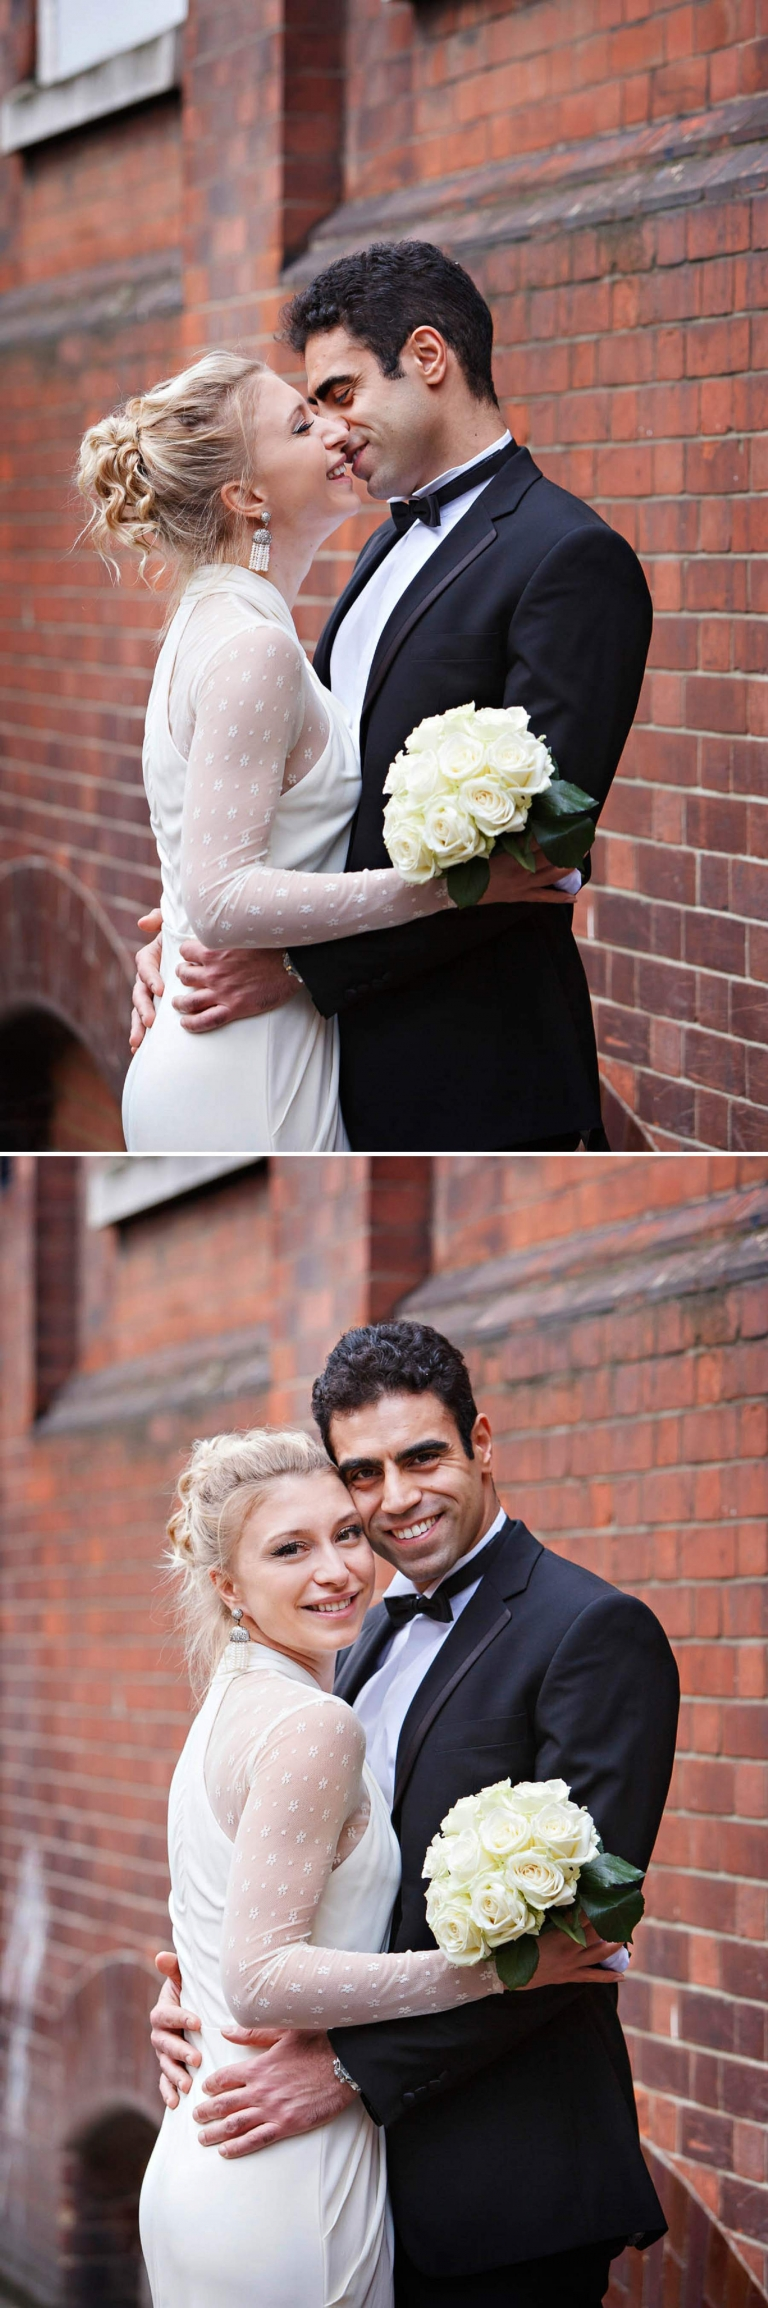 Wedding Portrait Photography in Chelsea